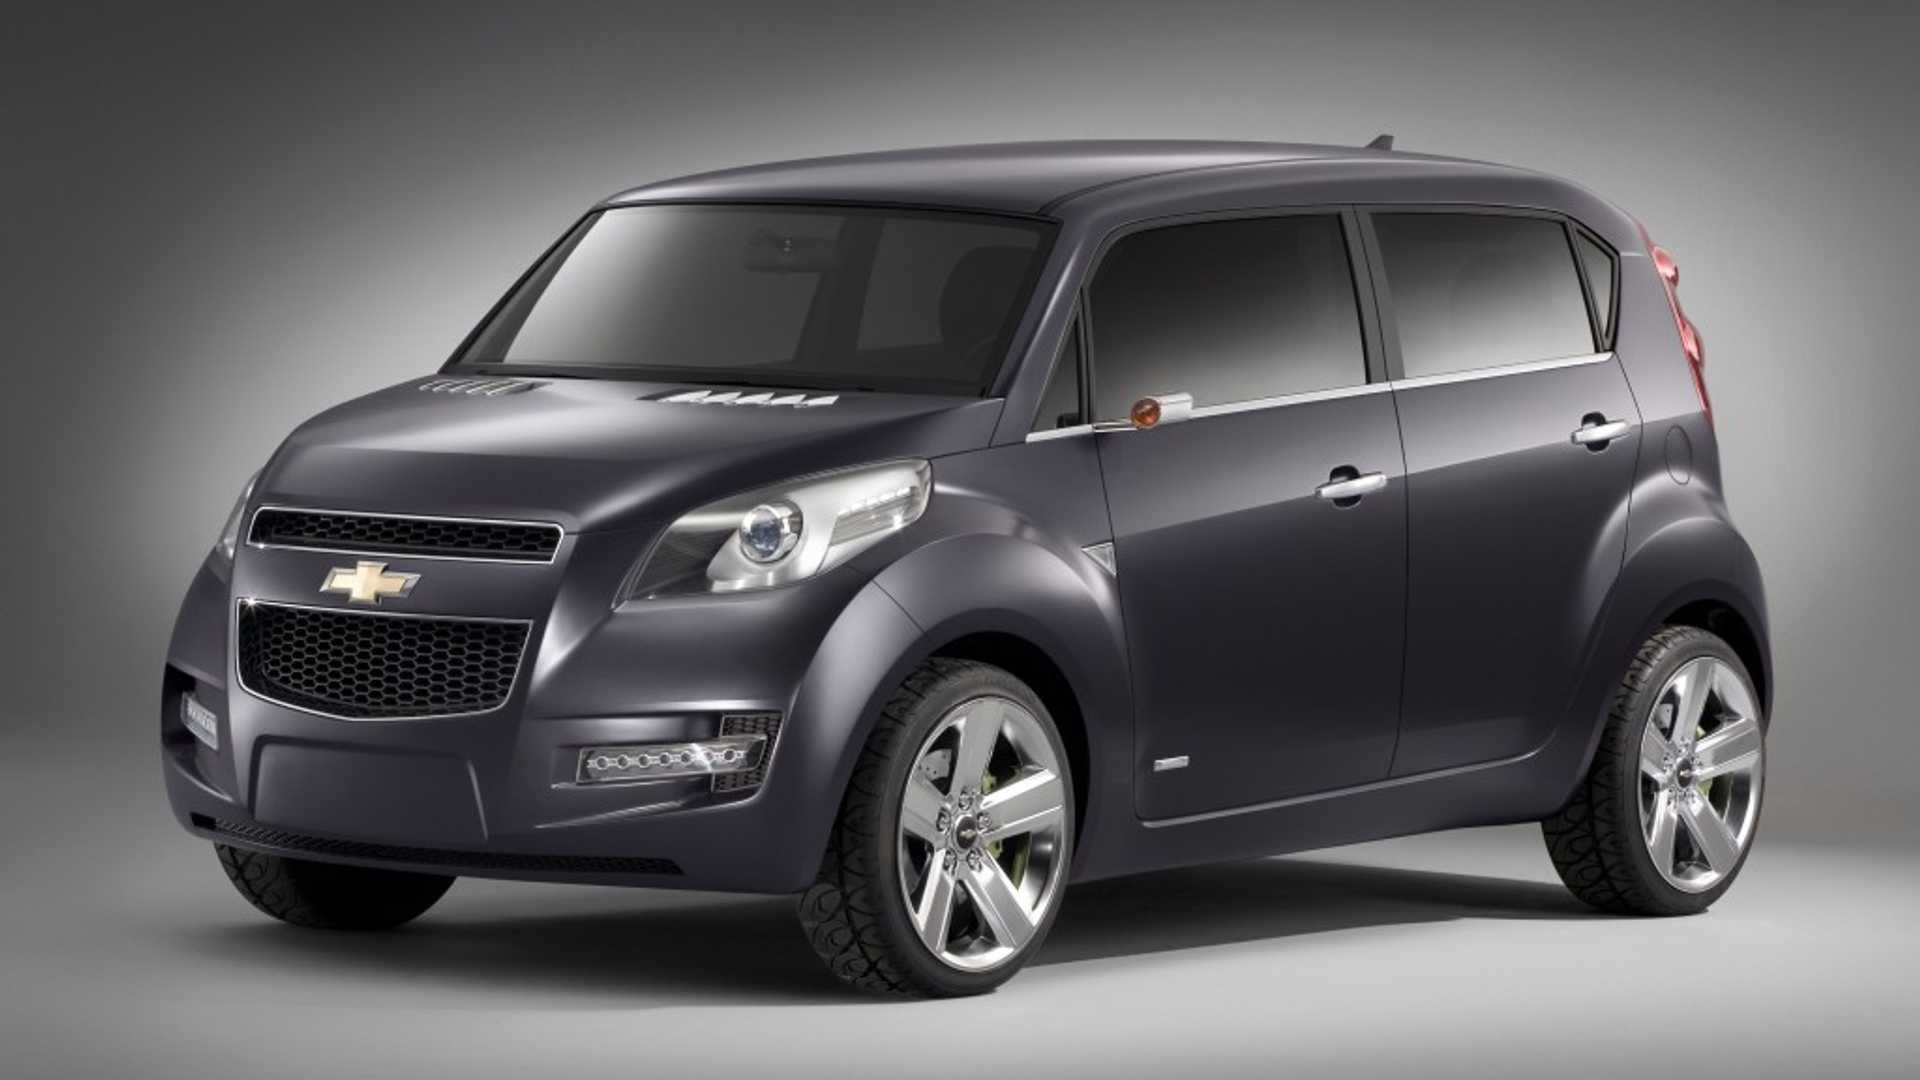 GM Trademarks Groove Name From Old Chevy Concept